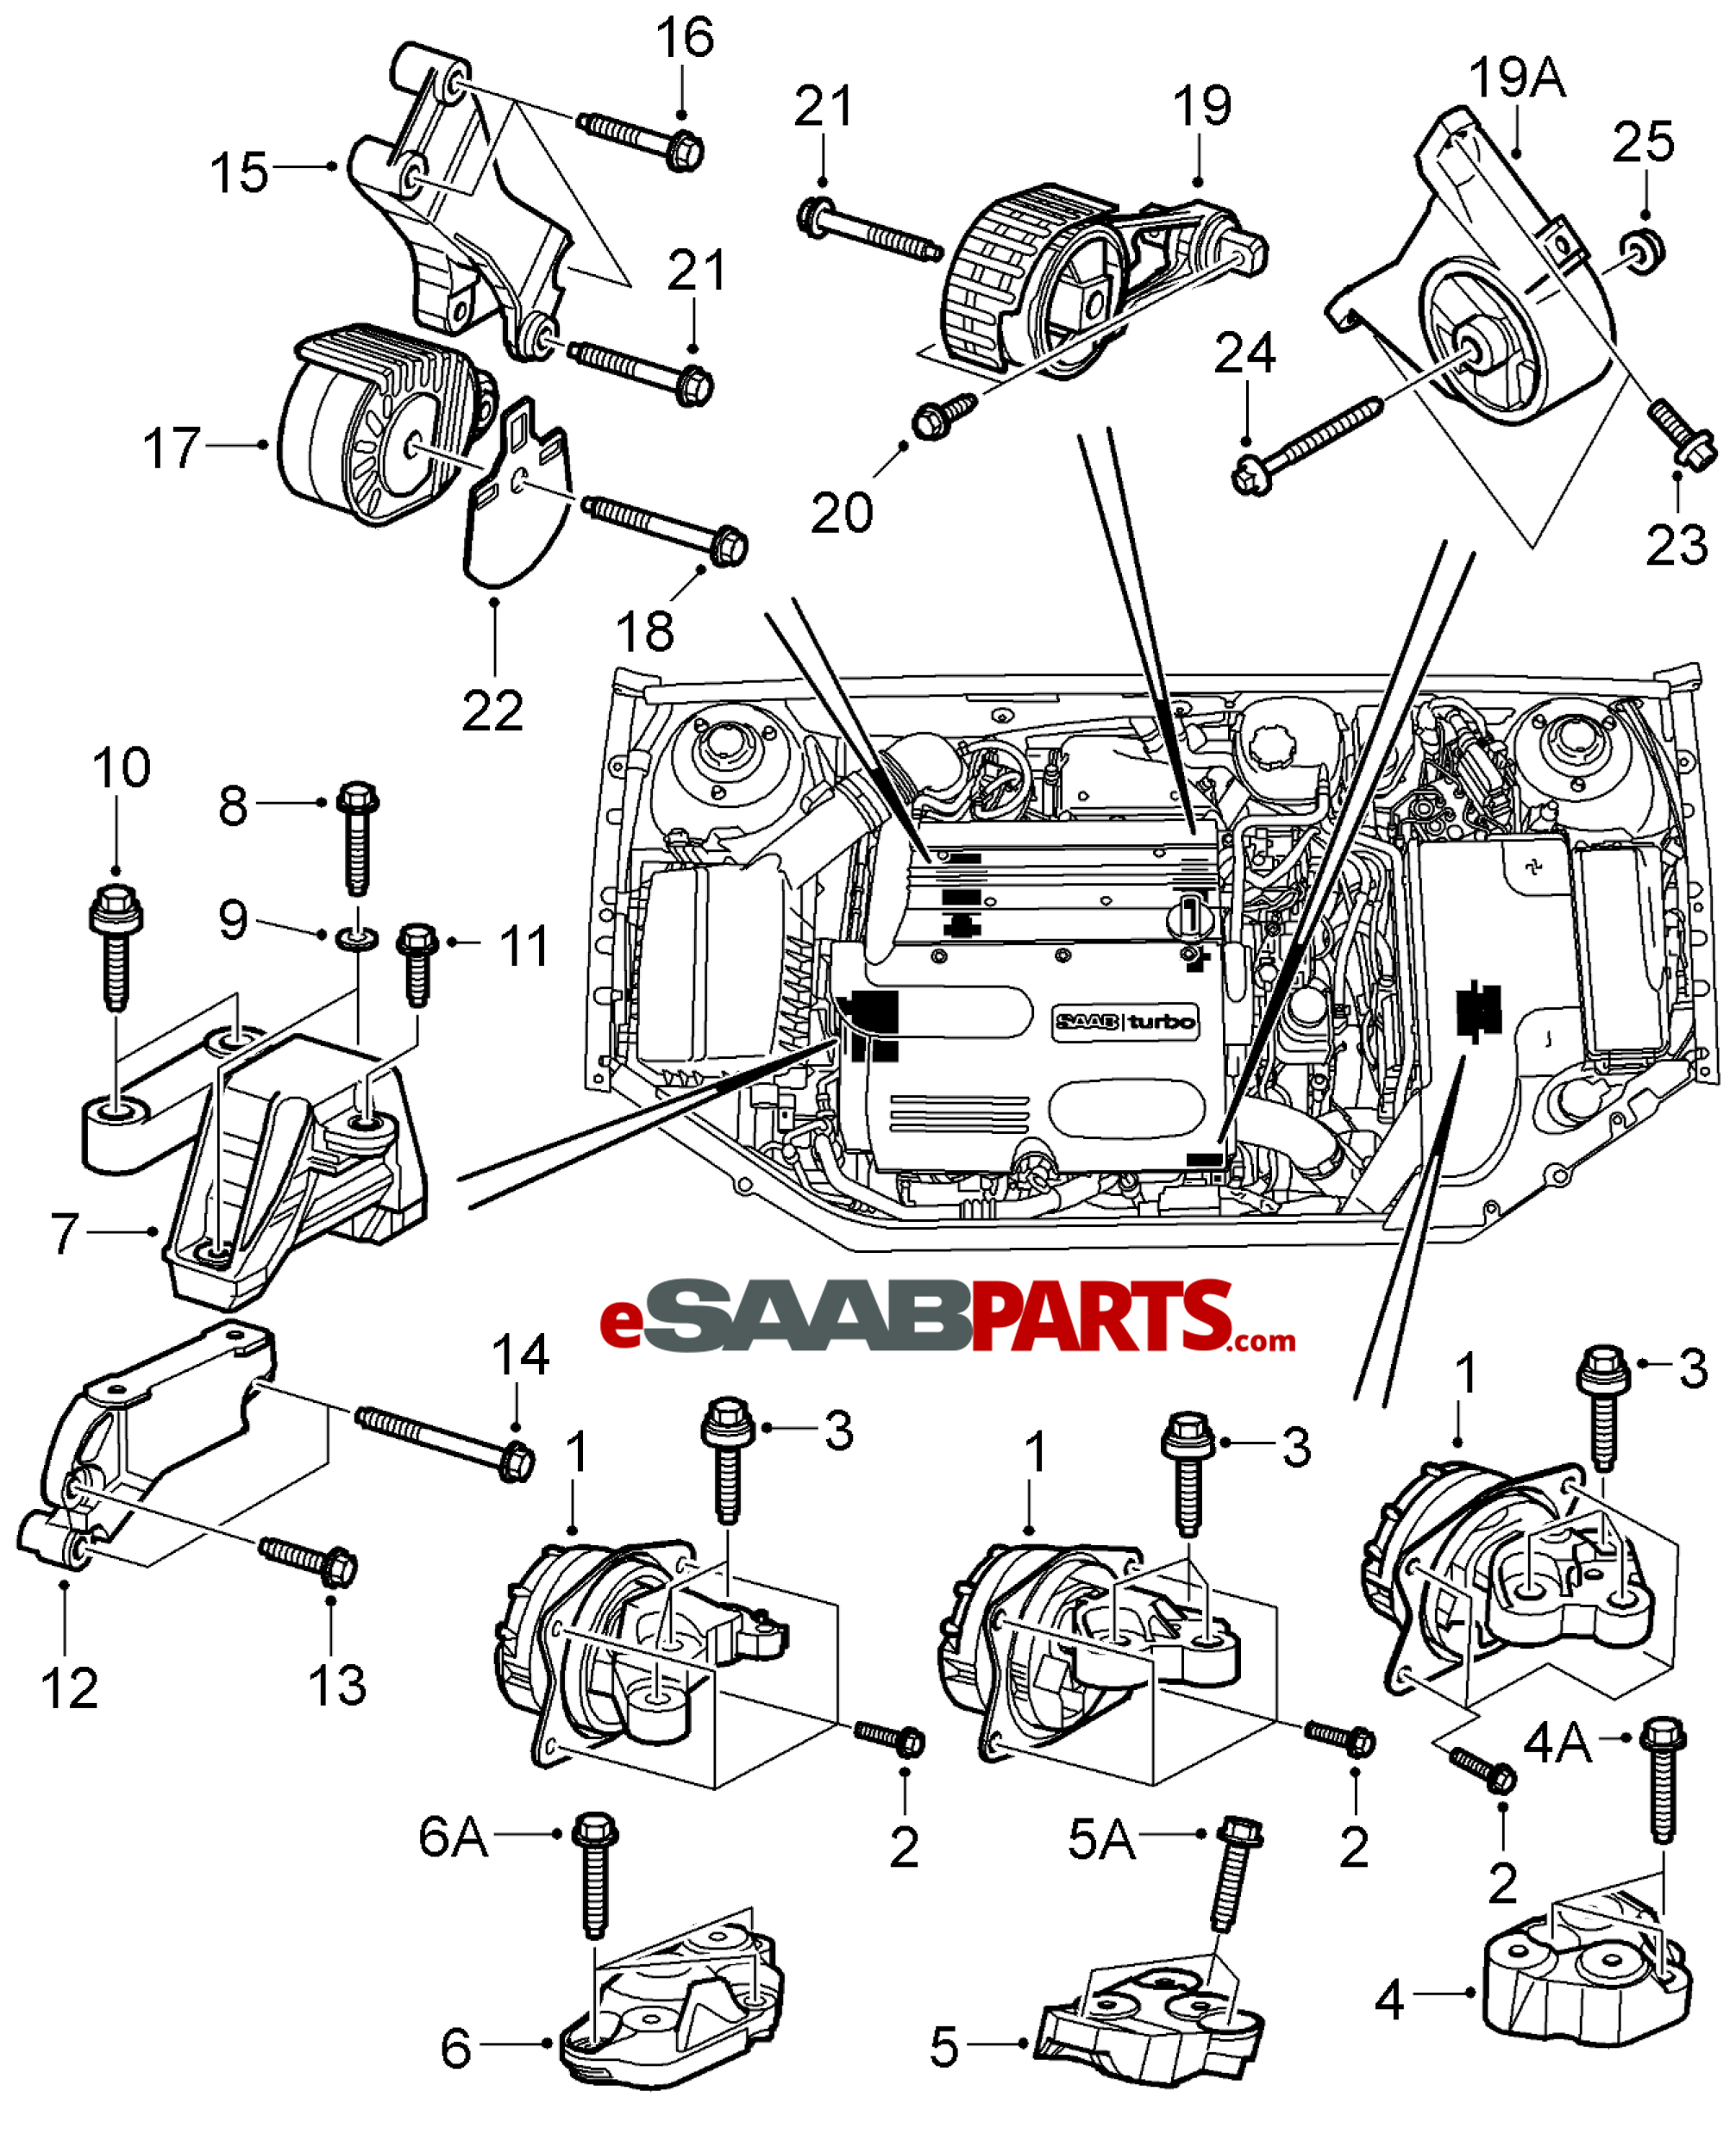 esaabparts com saab 9 3 9440 u003e engine parts u003e engine mounts rh esaabparts com 2001 Saab Radiator Diagram 2001 Saab Radiator Diagram